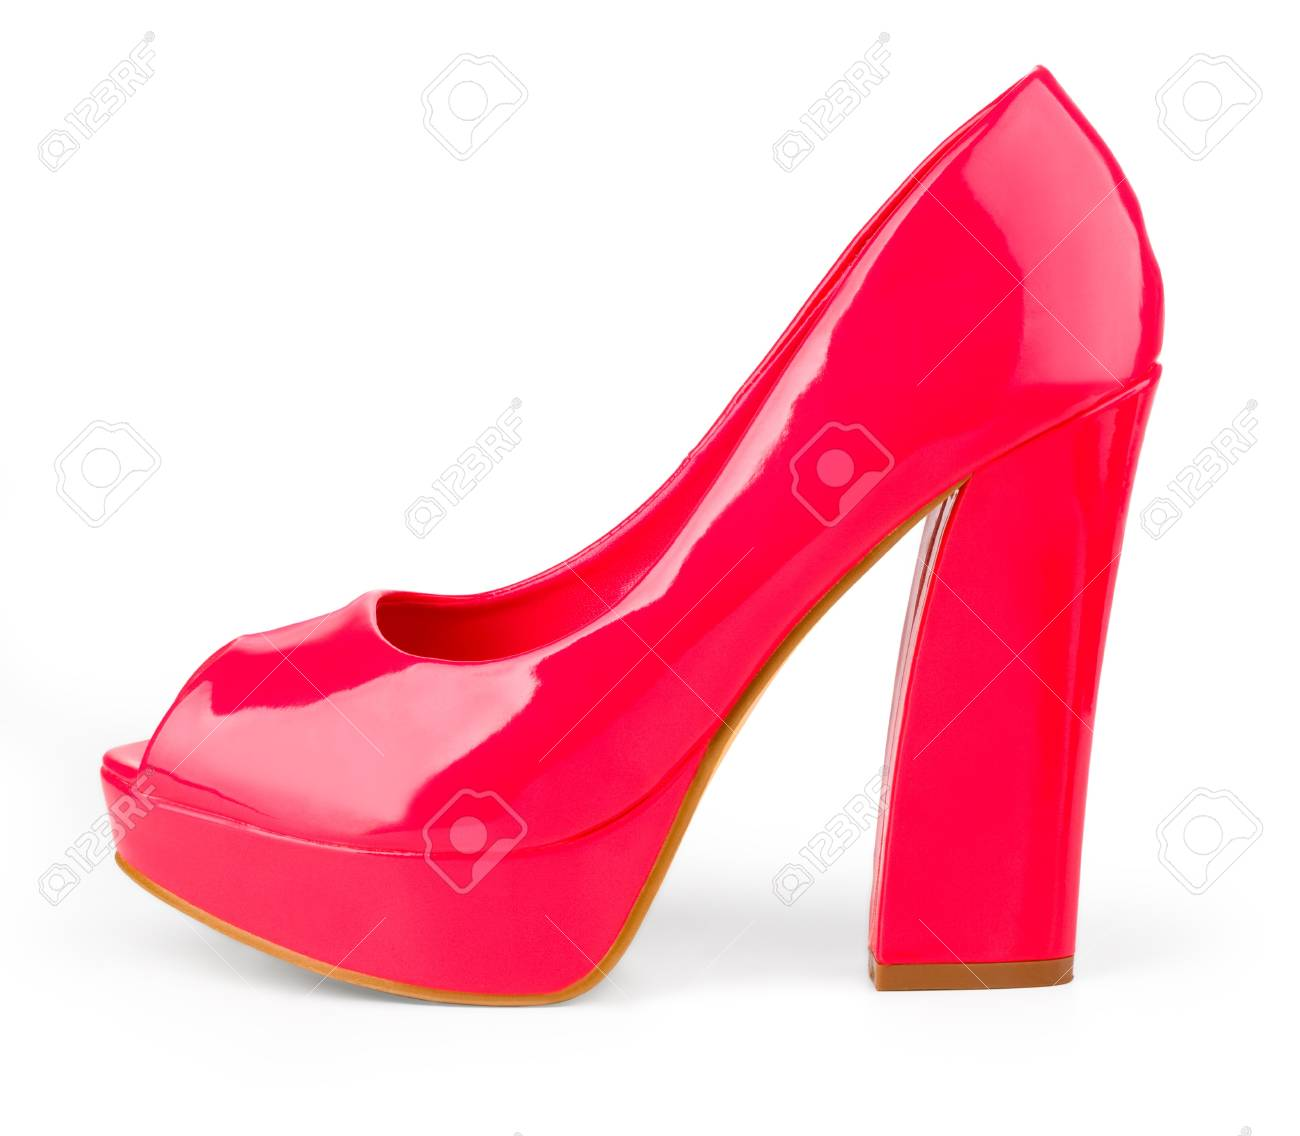 665826ec23 High Heels with inner platform sole, red patent leather Stock Photo -  20984321